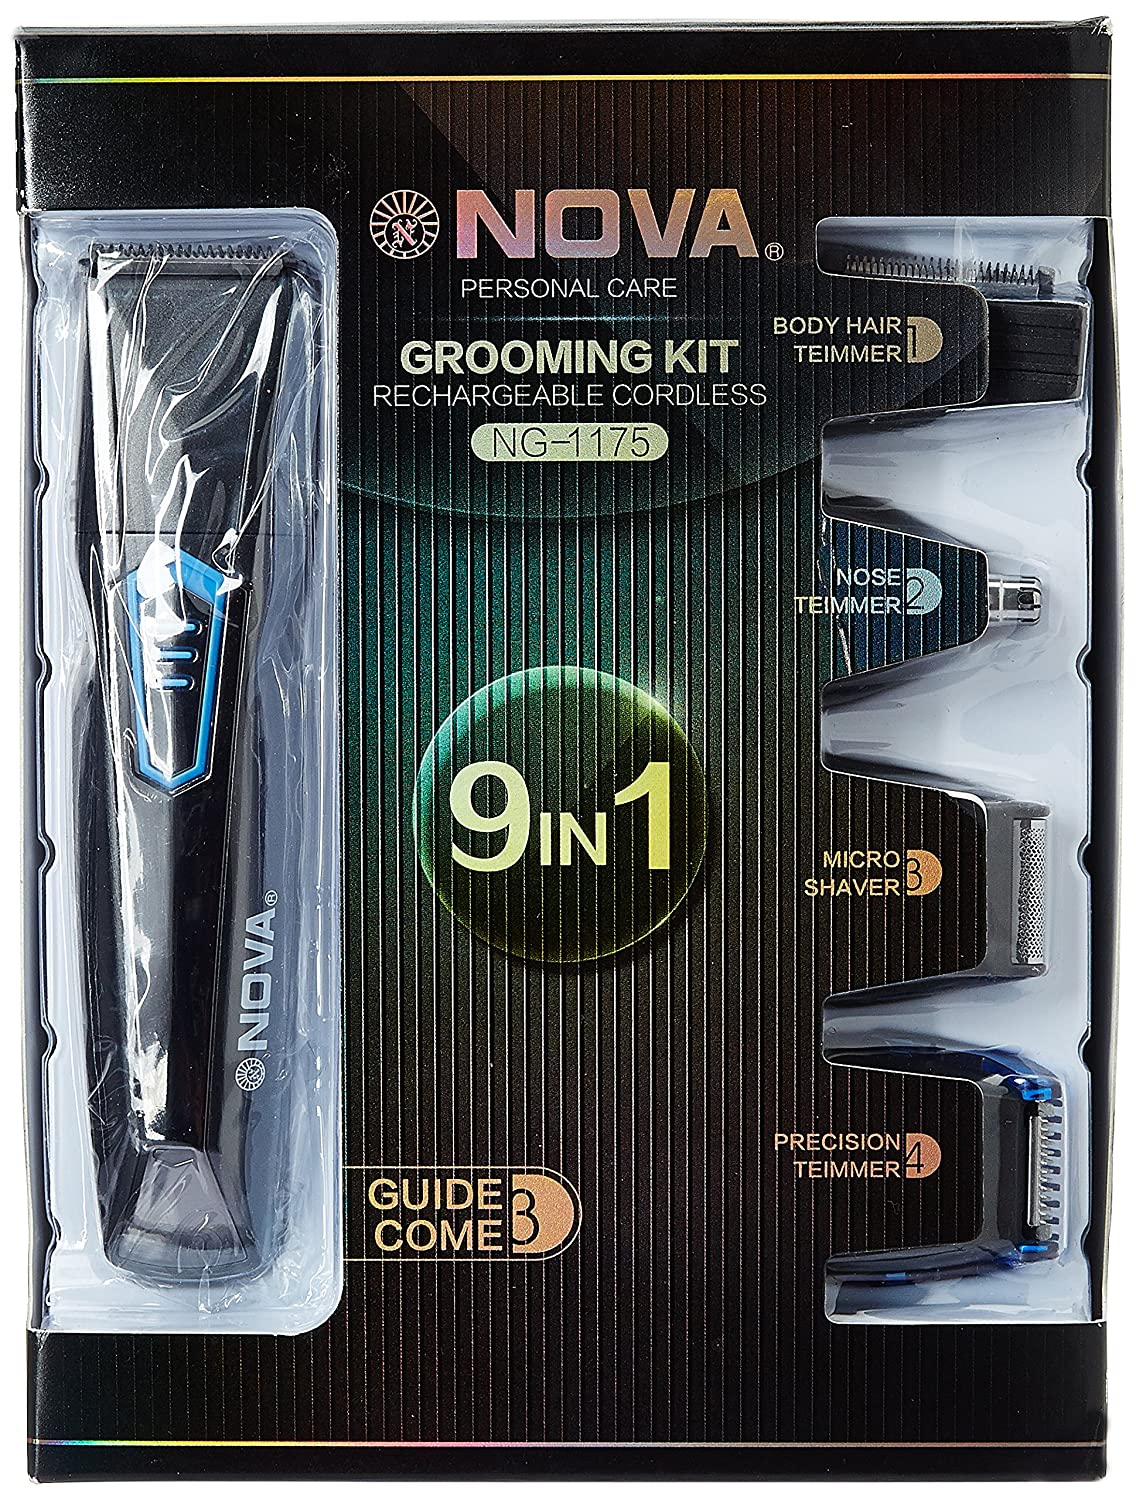 Nova 9 in 1 Grooming Kit  NG 1175  Grey  Men's Grooming Sets   Kits